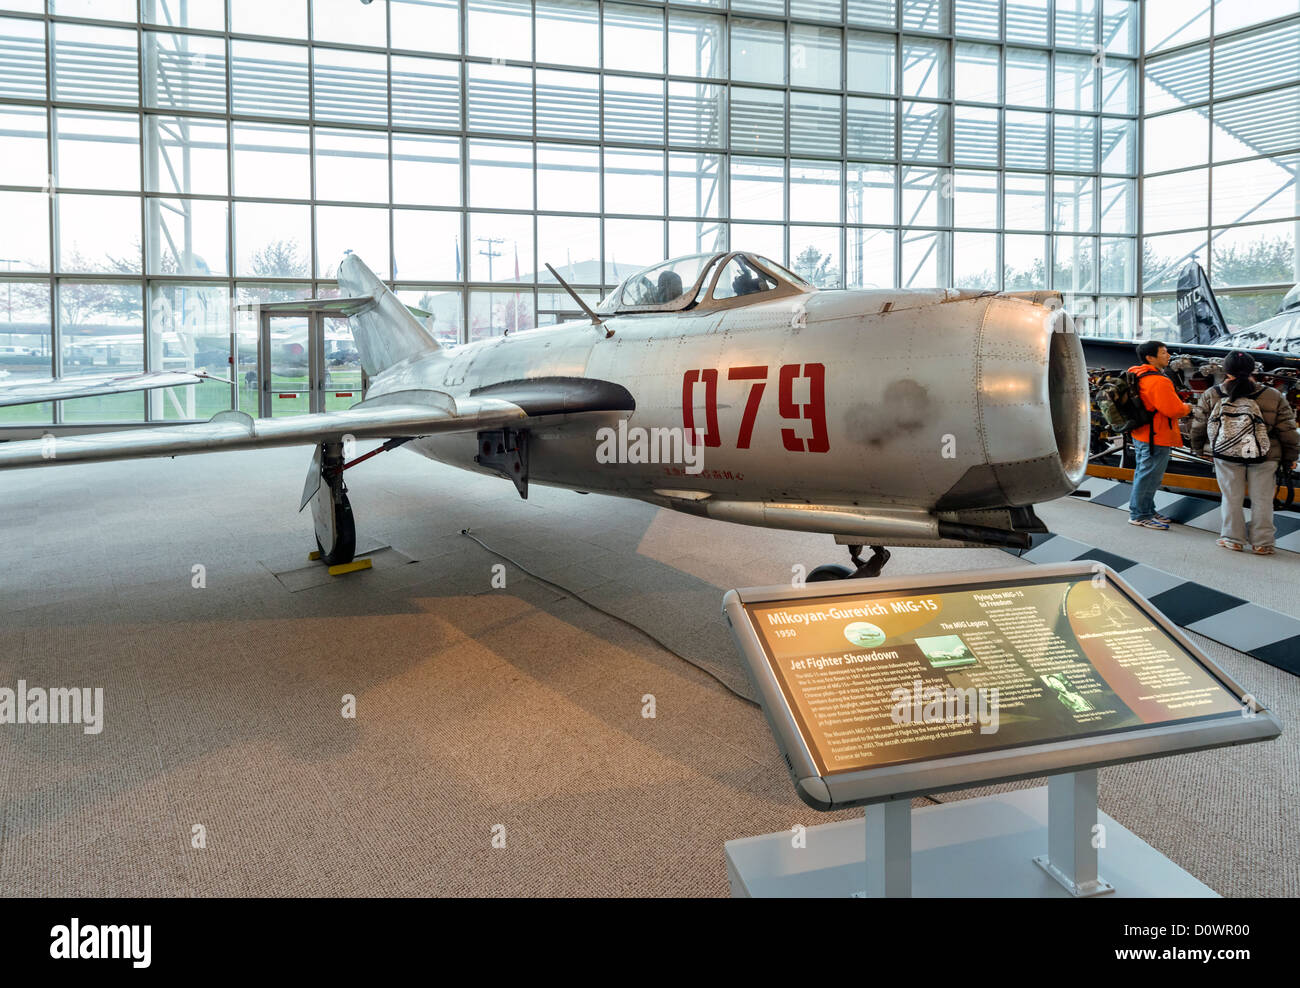 A 1950 Mikoyan-Gurevich MiG-15 fighter aircraft, The Great Gallery, Museum of Flight, Seattle, Washington, USA - Stock Image